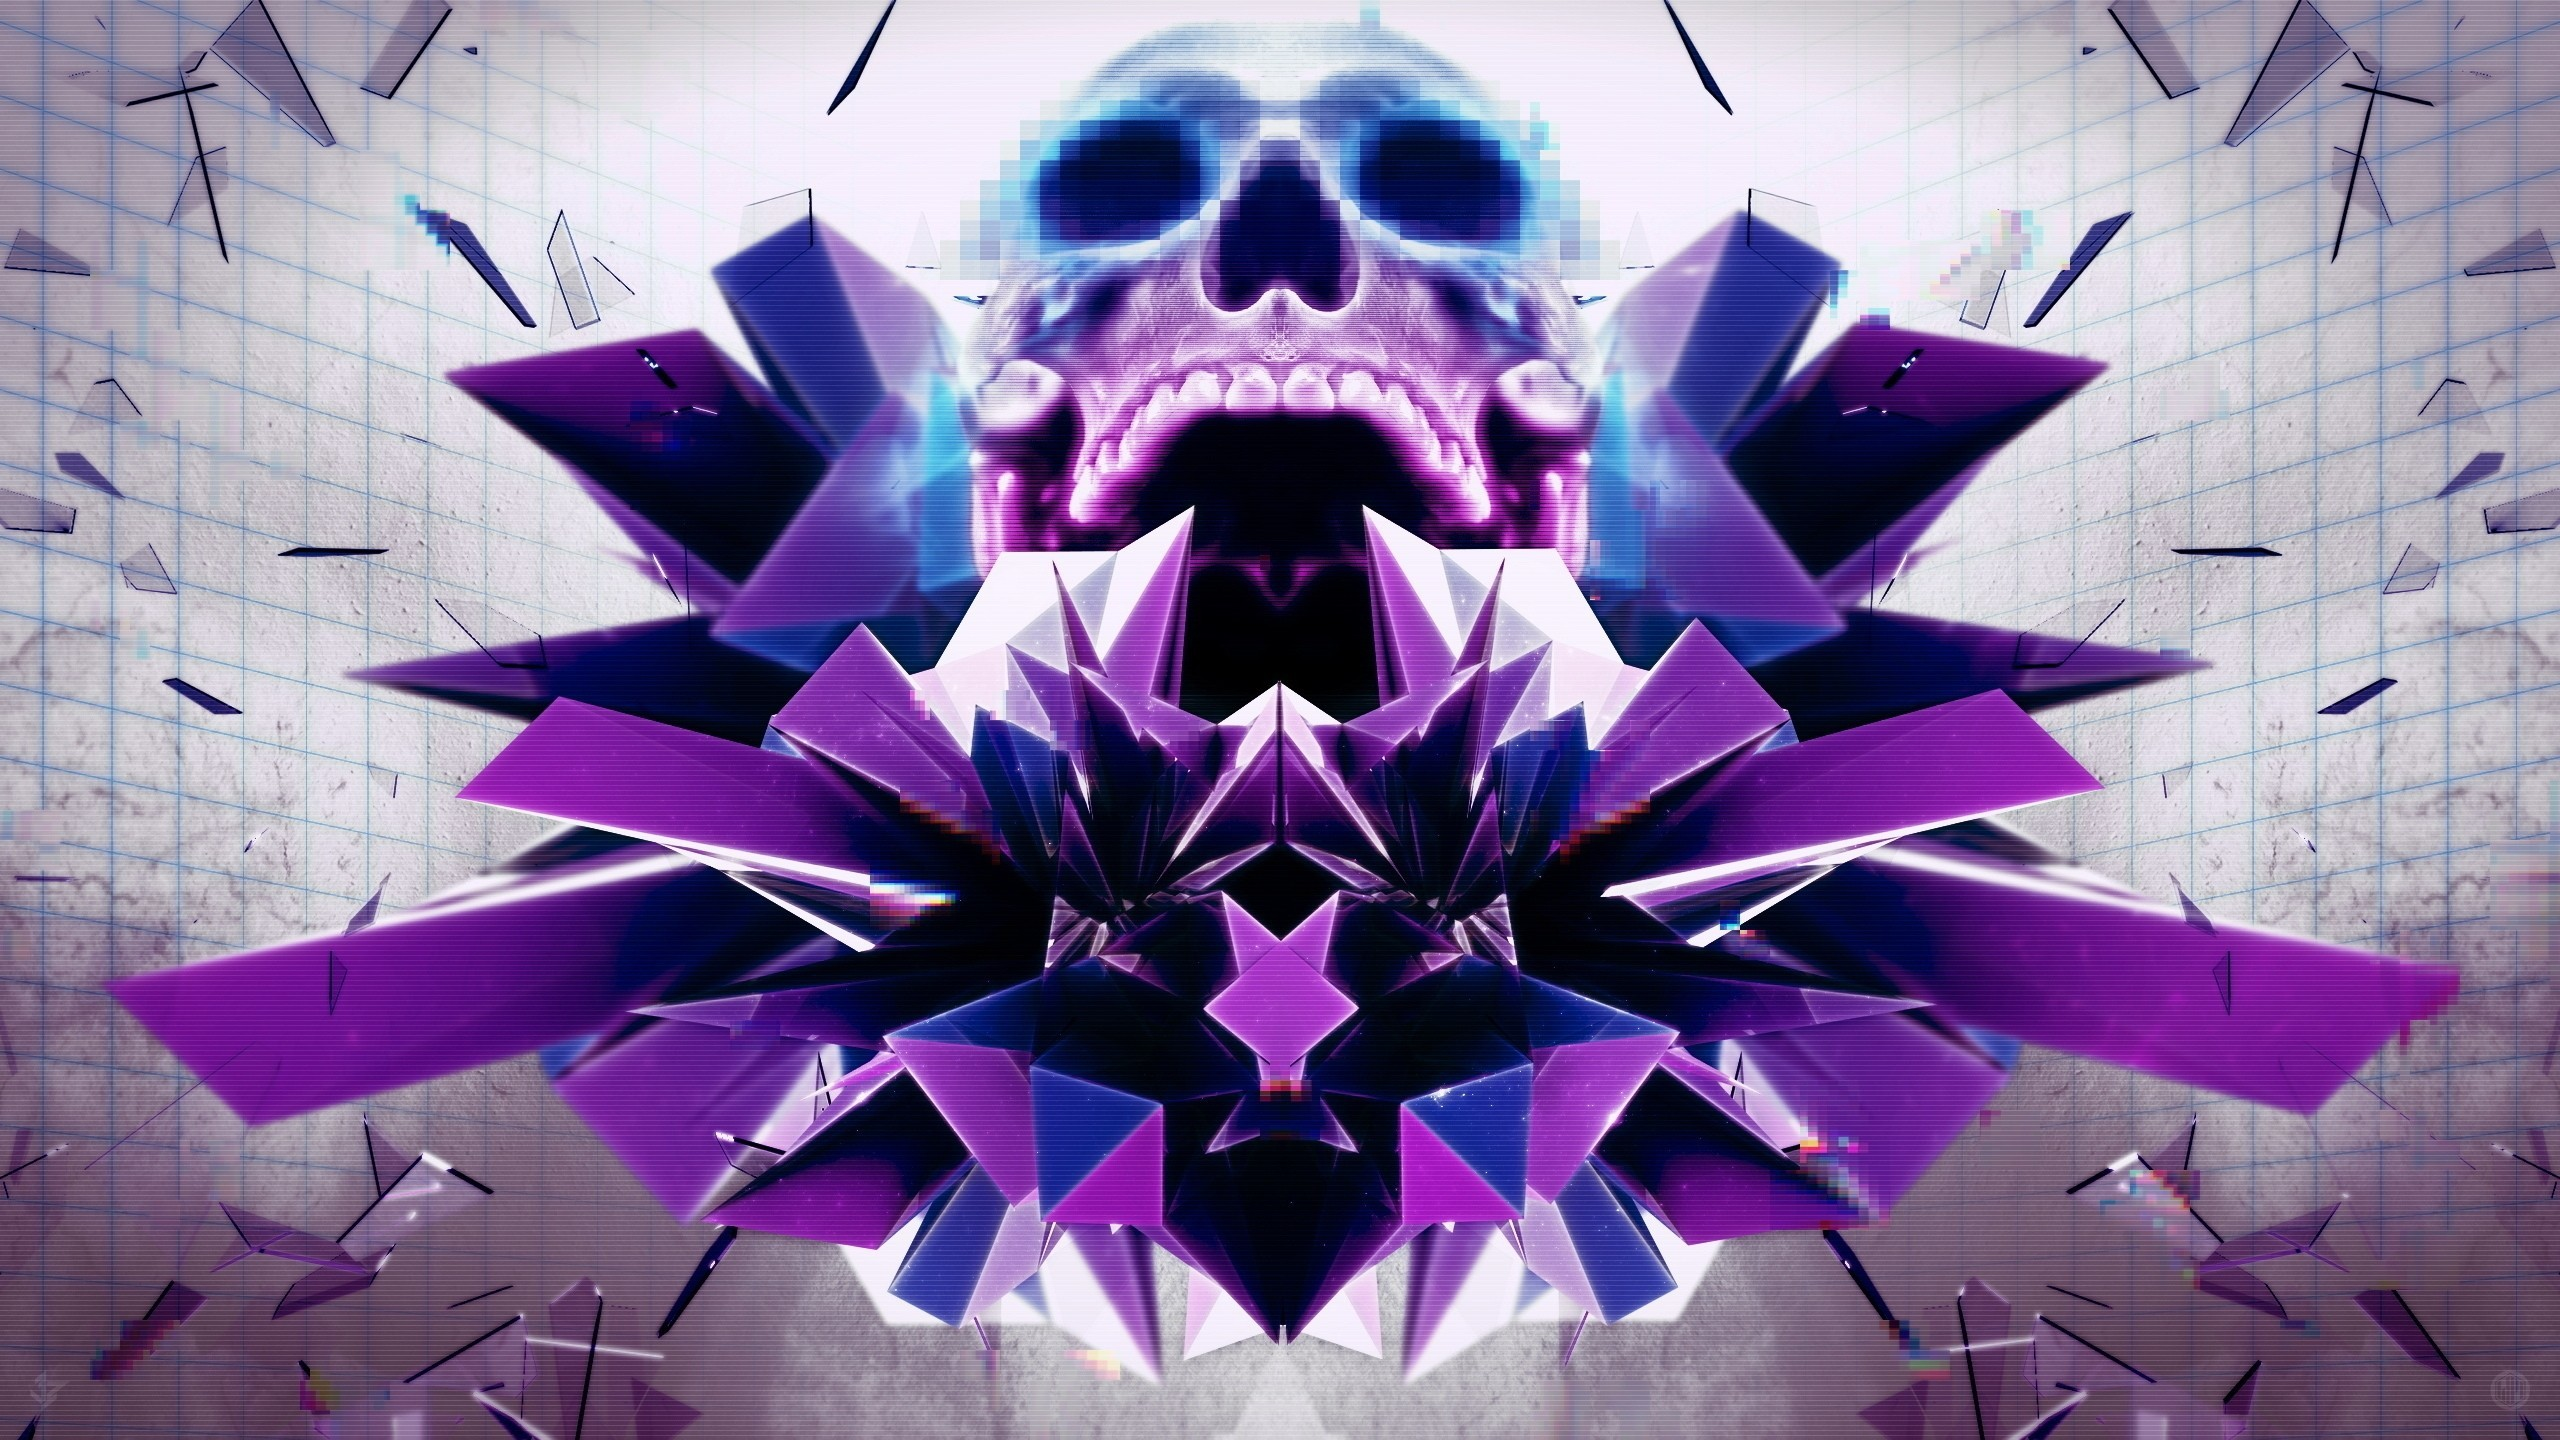 Abstract Skull Wallpaper (73+ Images